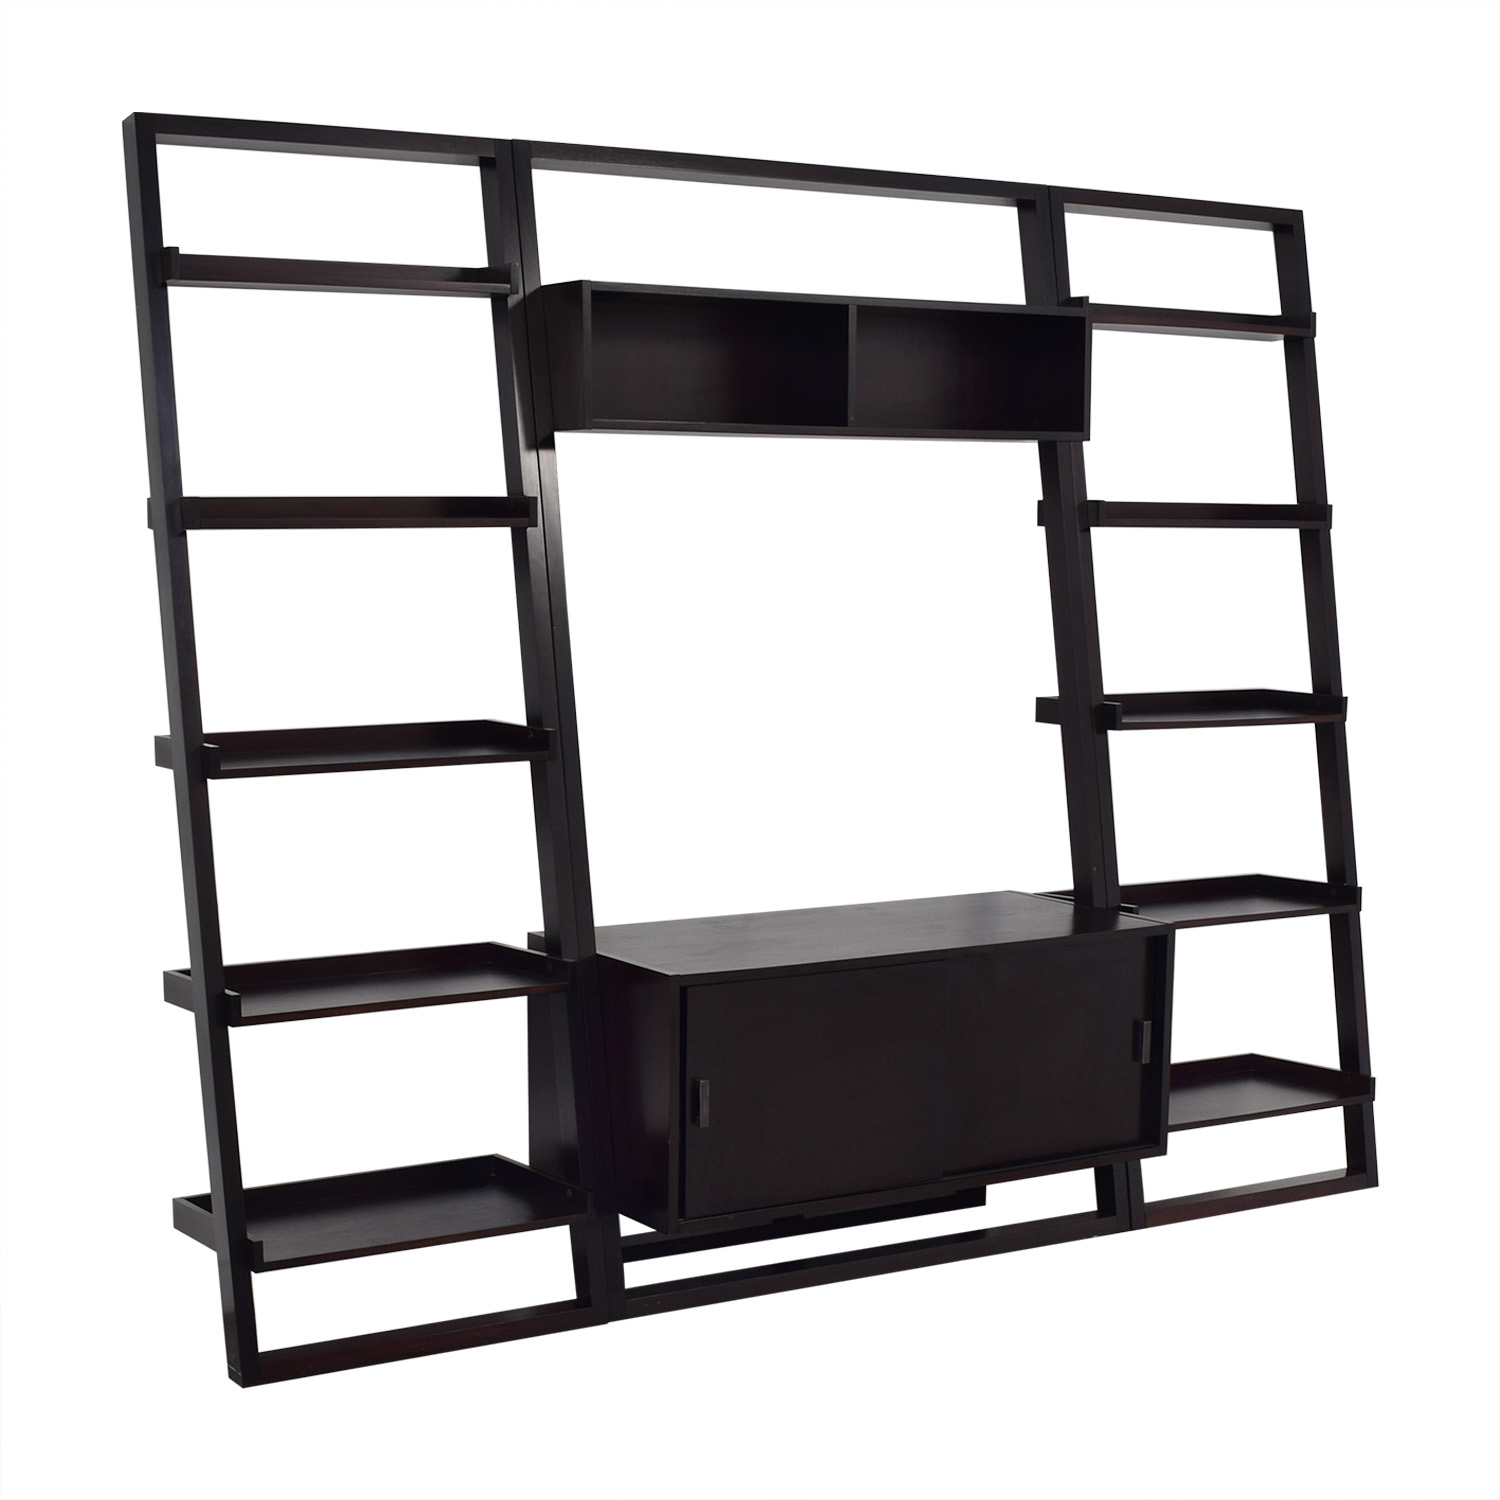 Crate & Barrel Crate & Barrel Sawyer Media Stand with Bookcases coupon